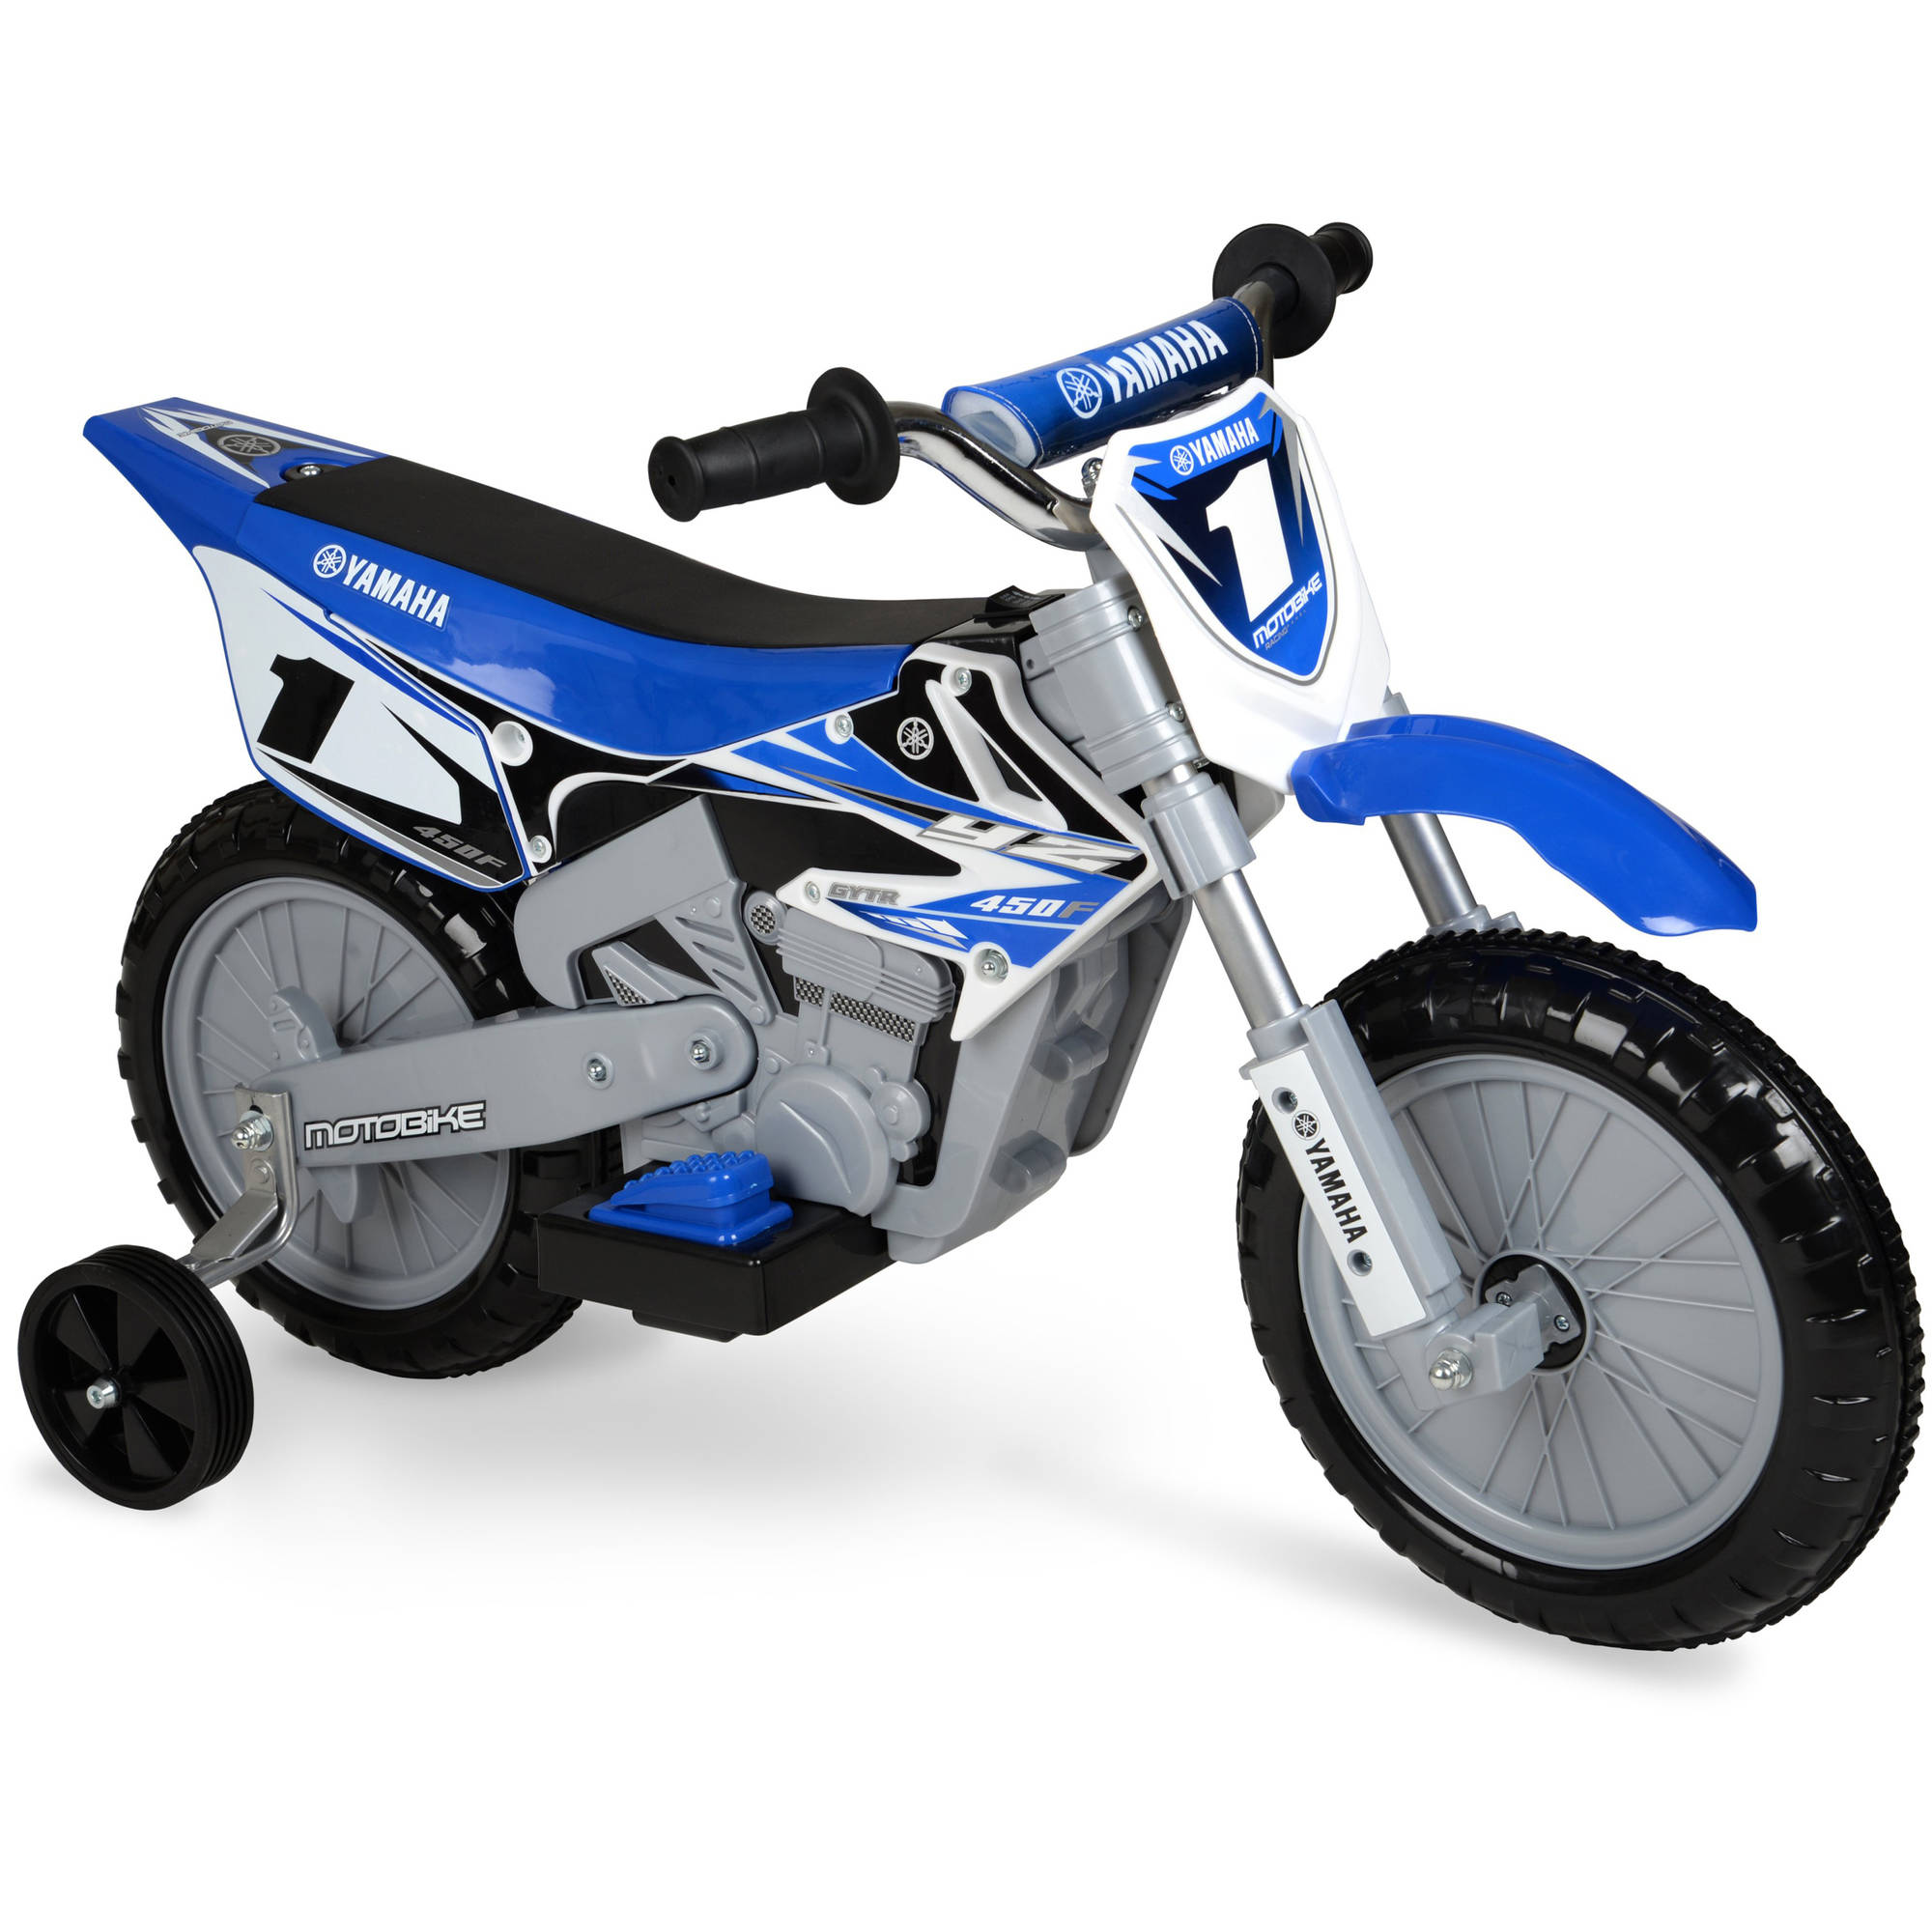 Kids' Motorcycle Toddlers Child Ride On Dirt Bike Riding Toy Boys ...